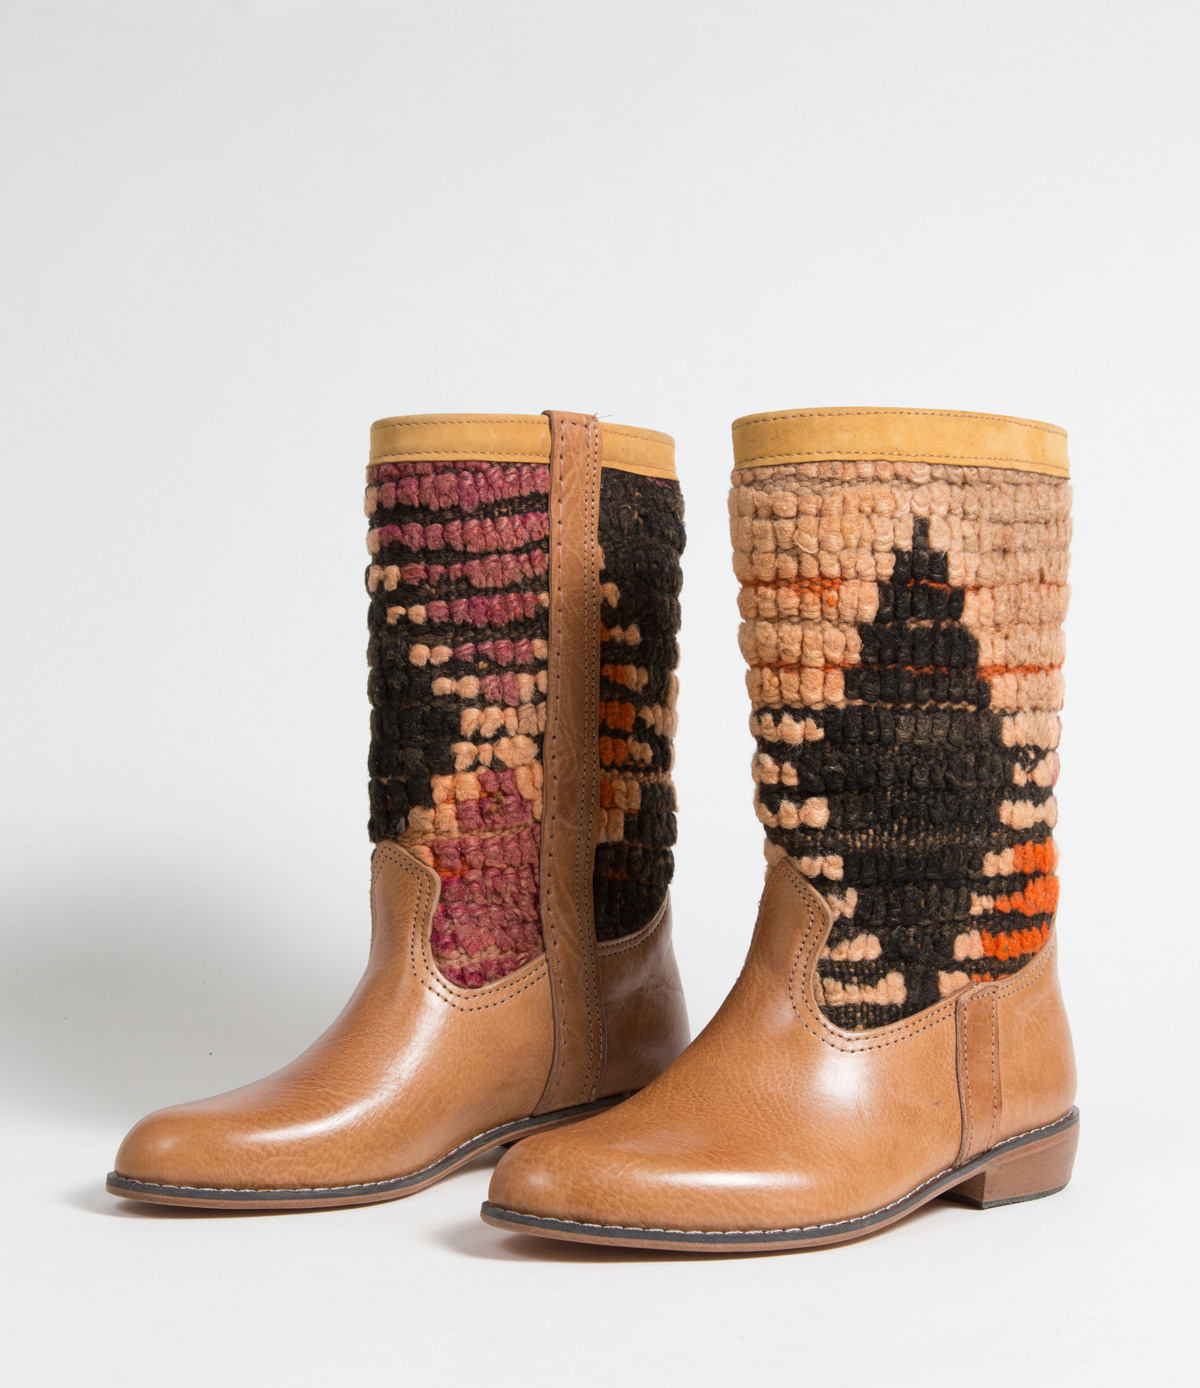 Bottes Kilim cuir mababouche artisanales (Réf. GL2-38)